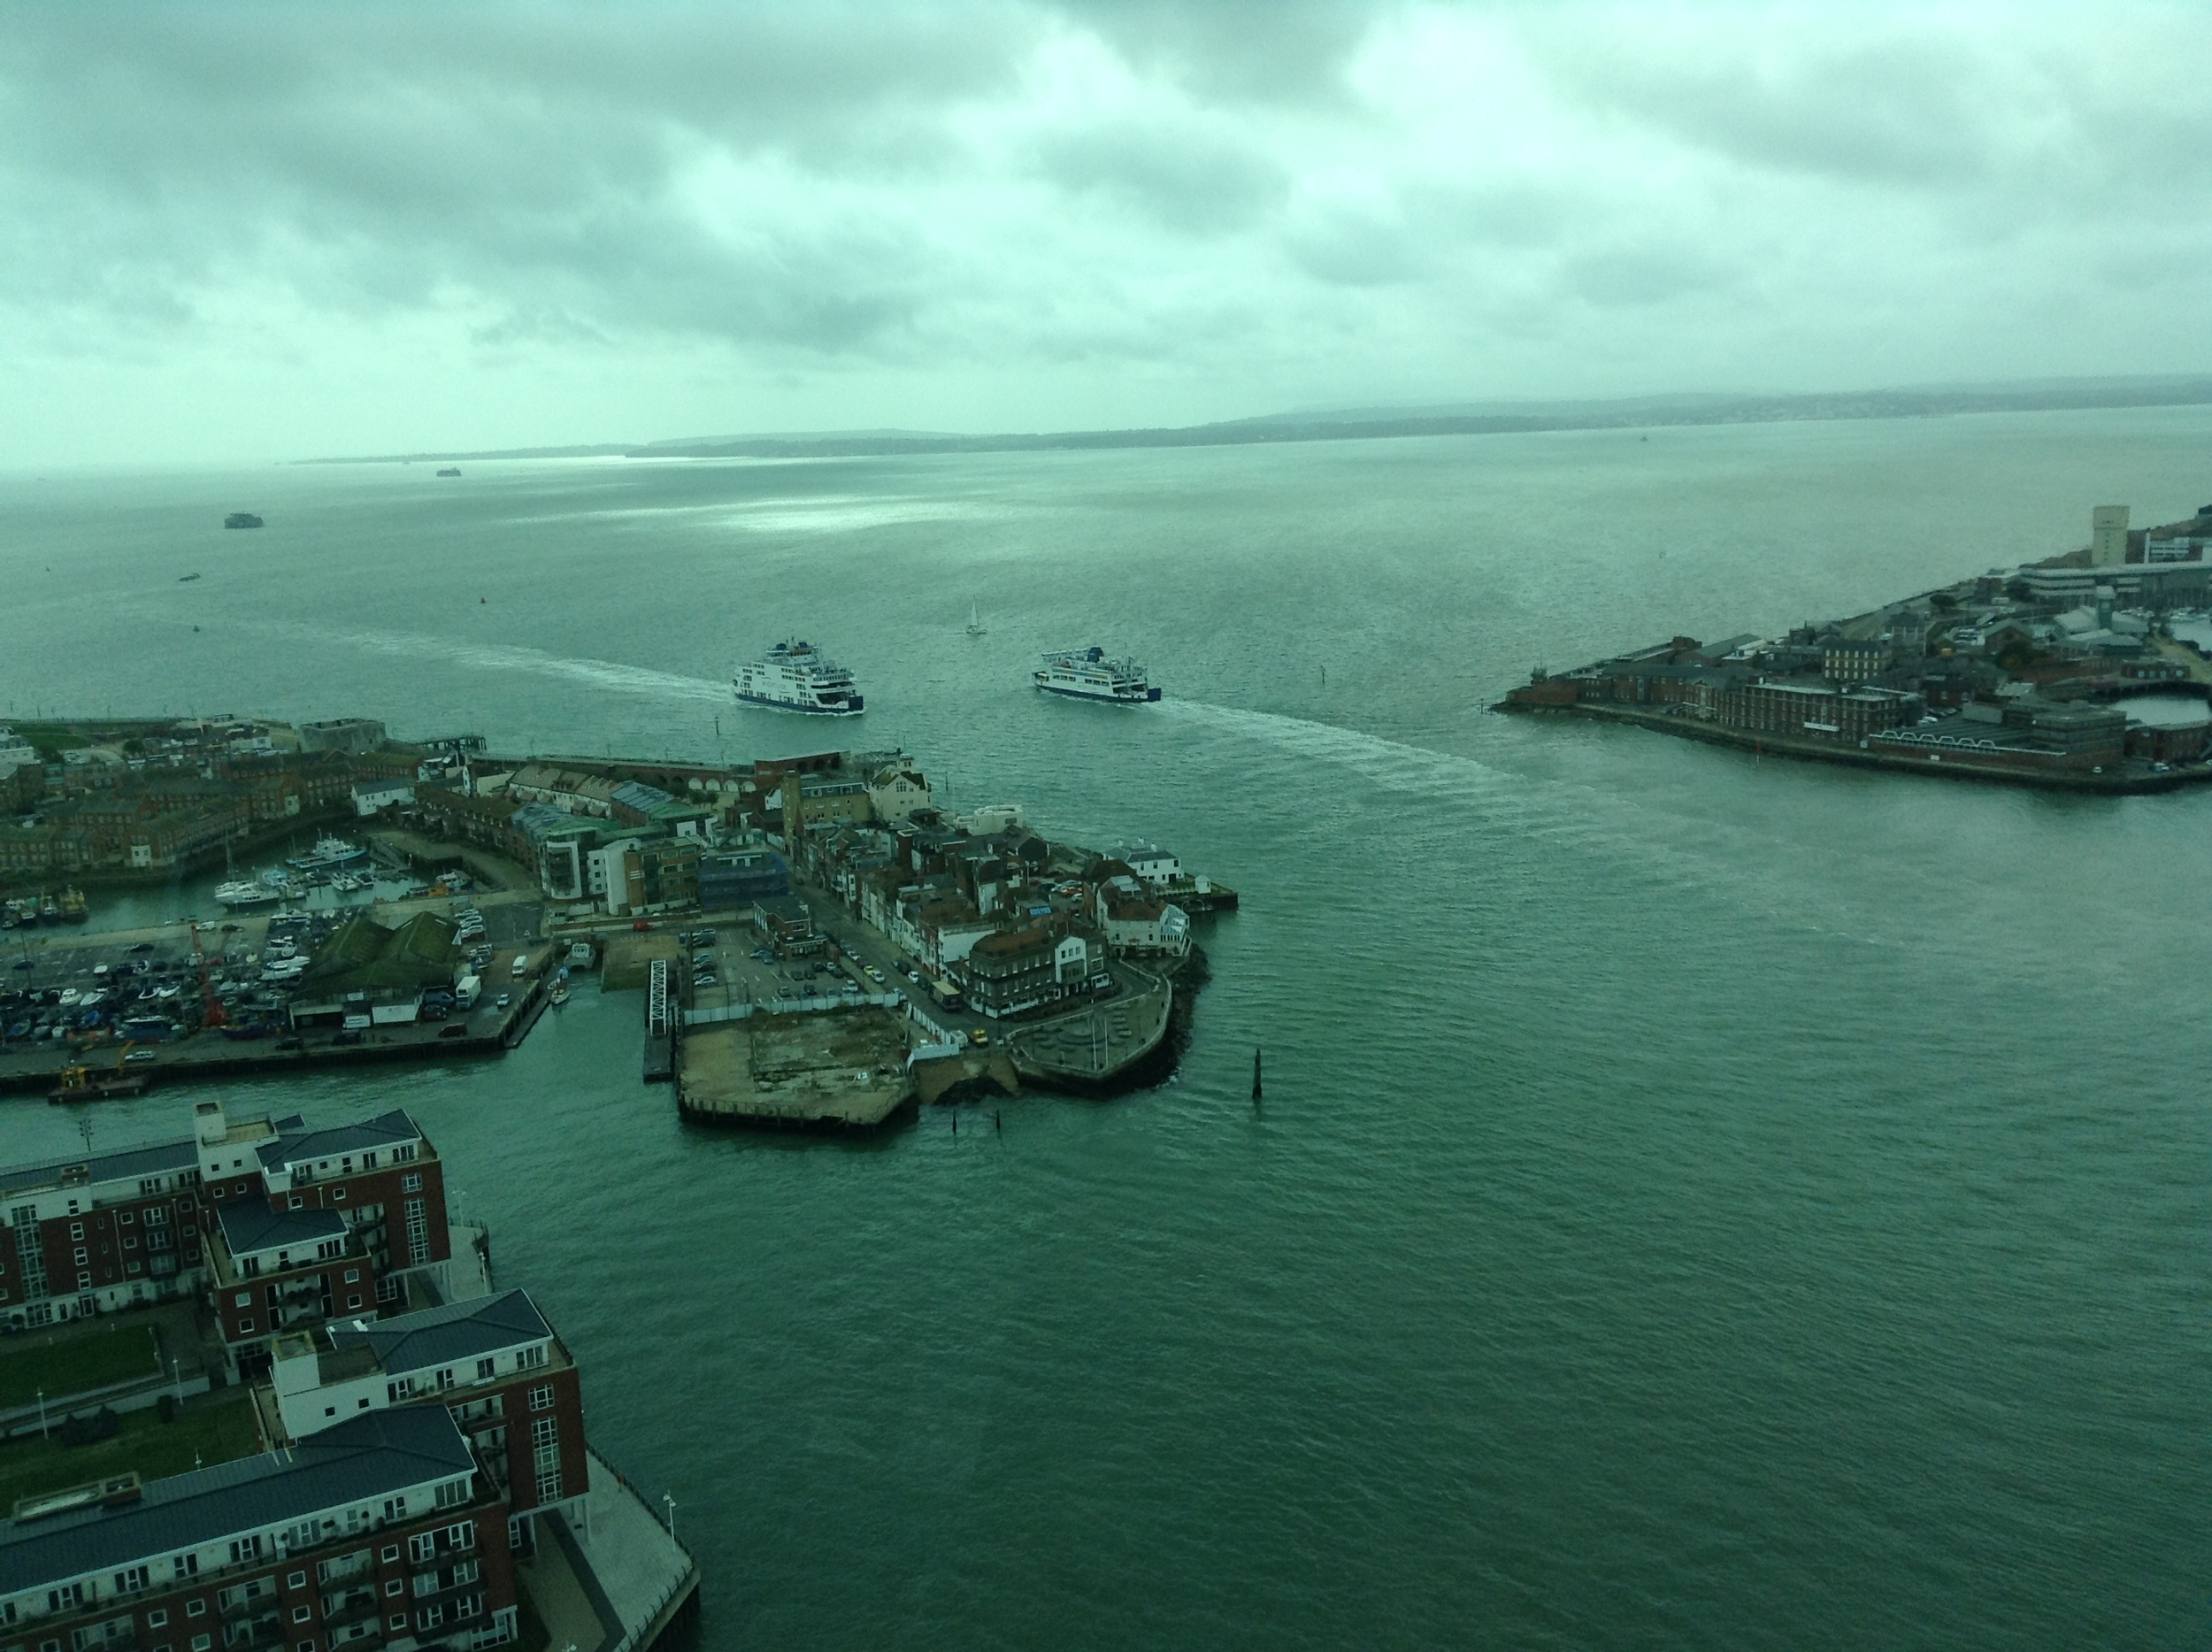 View from Spinnaker Tower with Isle of Wight in the distance